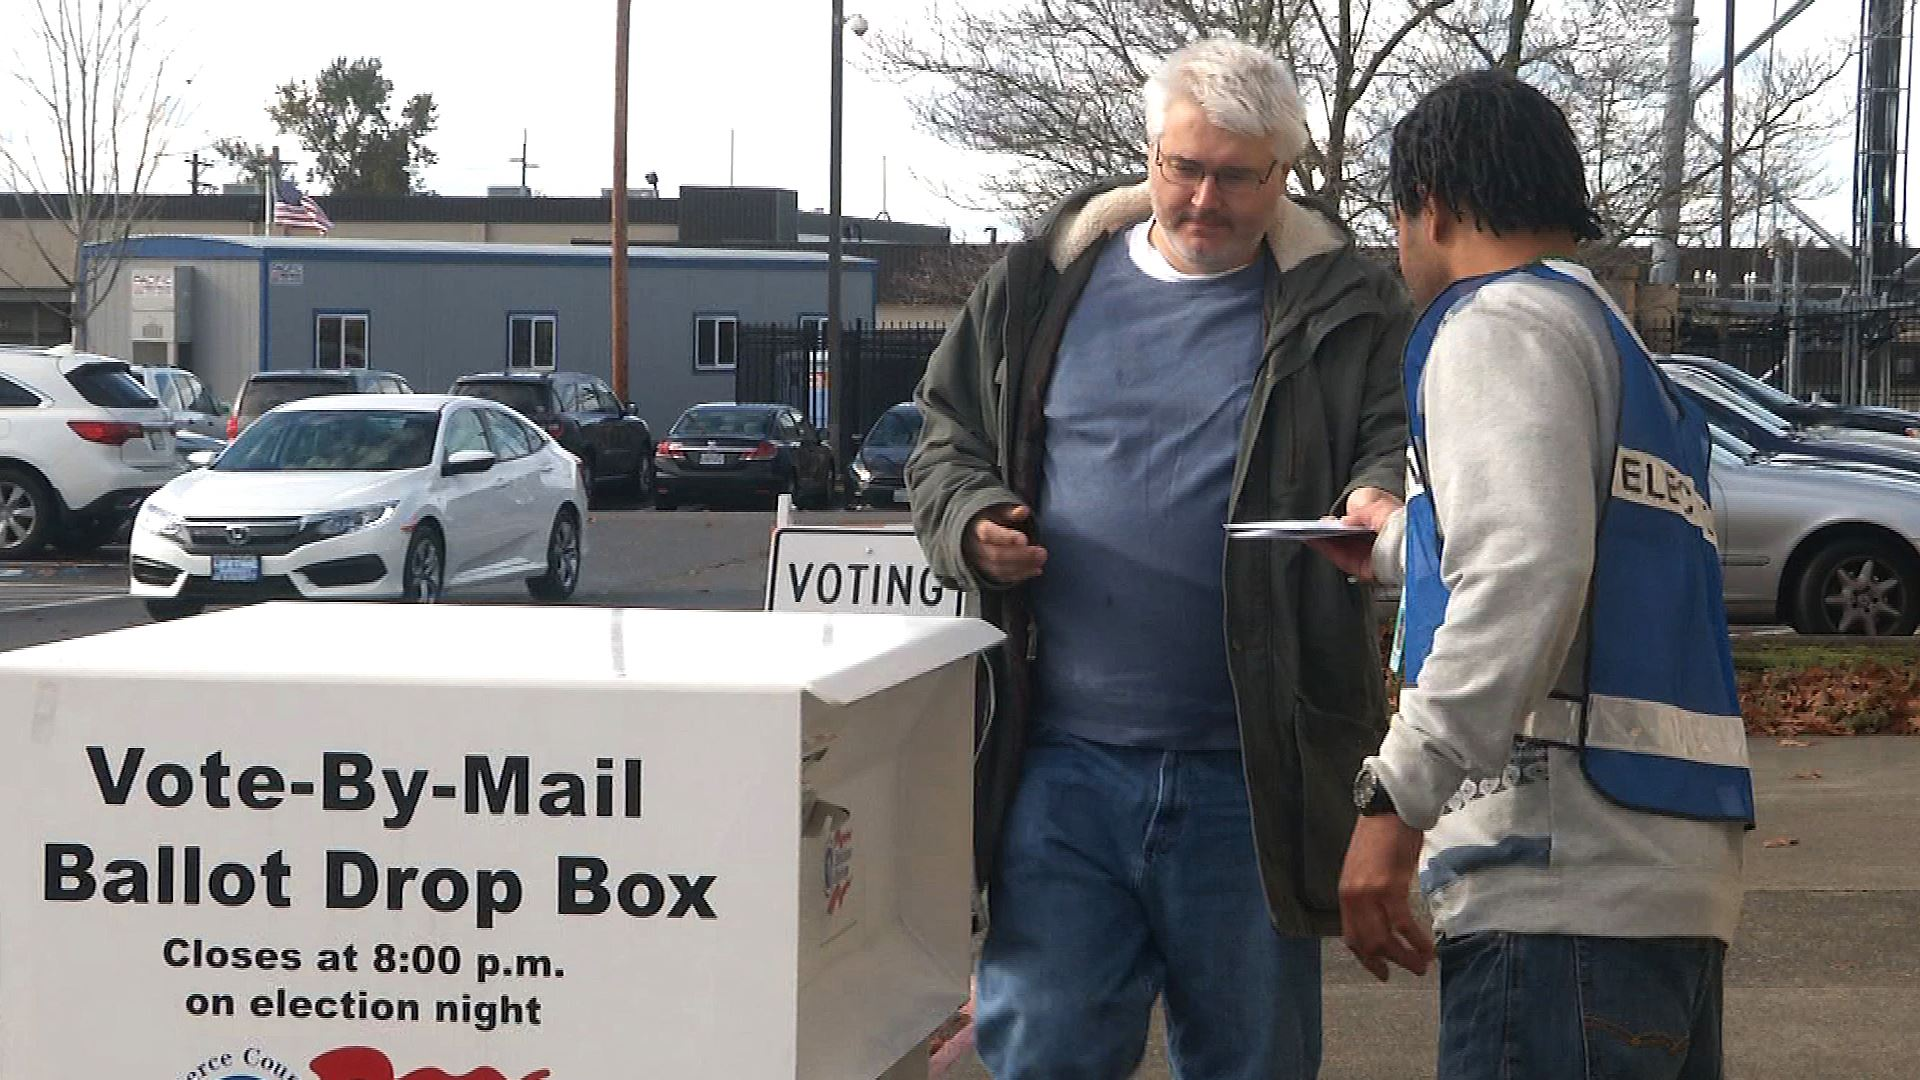 Access to Voting - Drop boxes